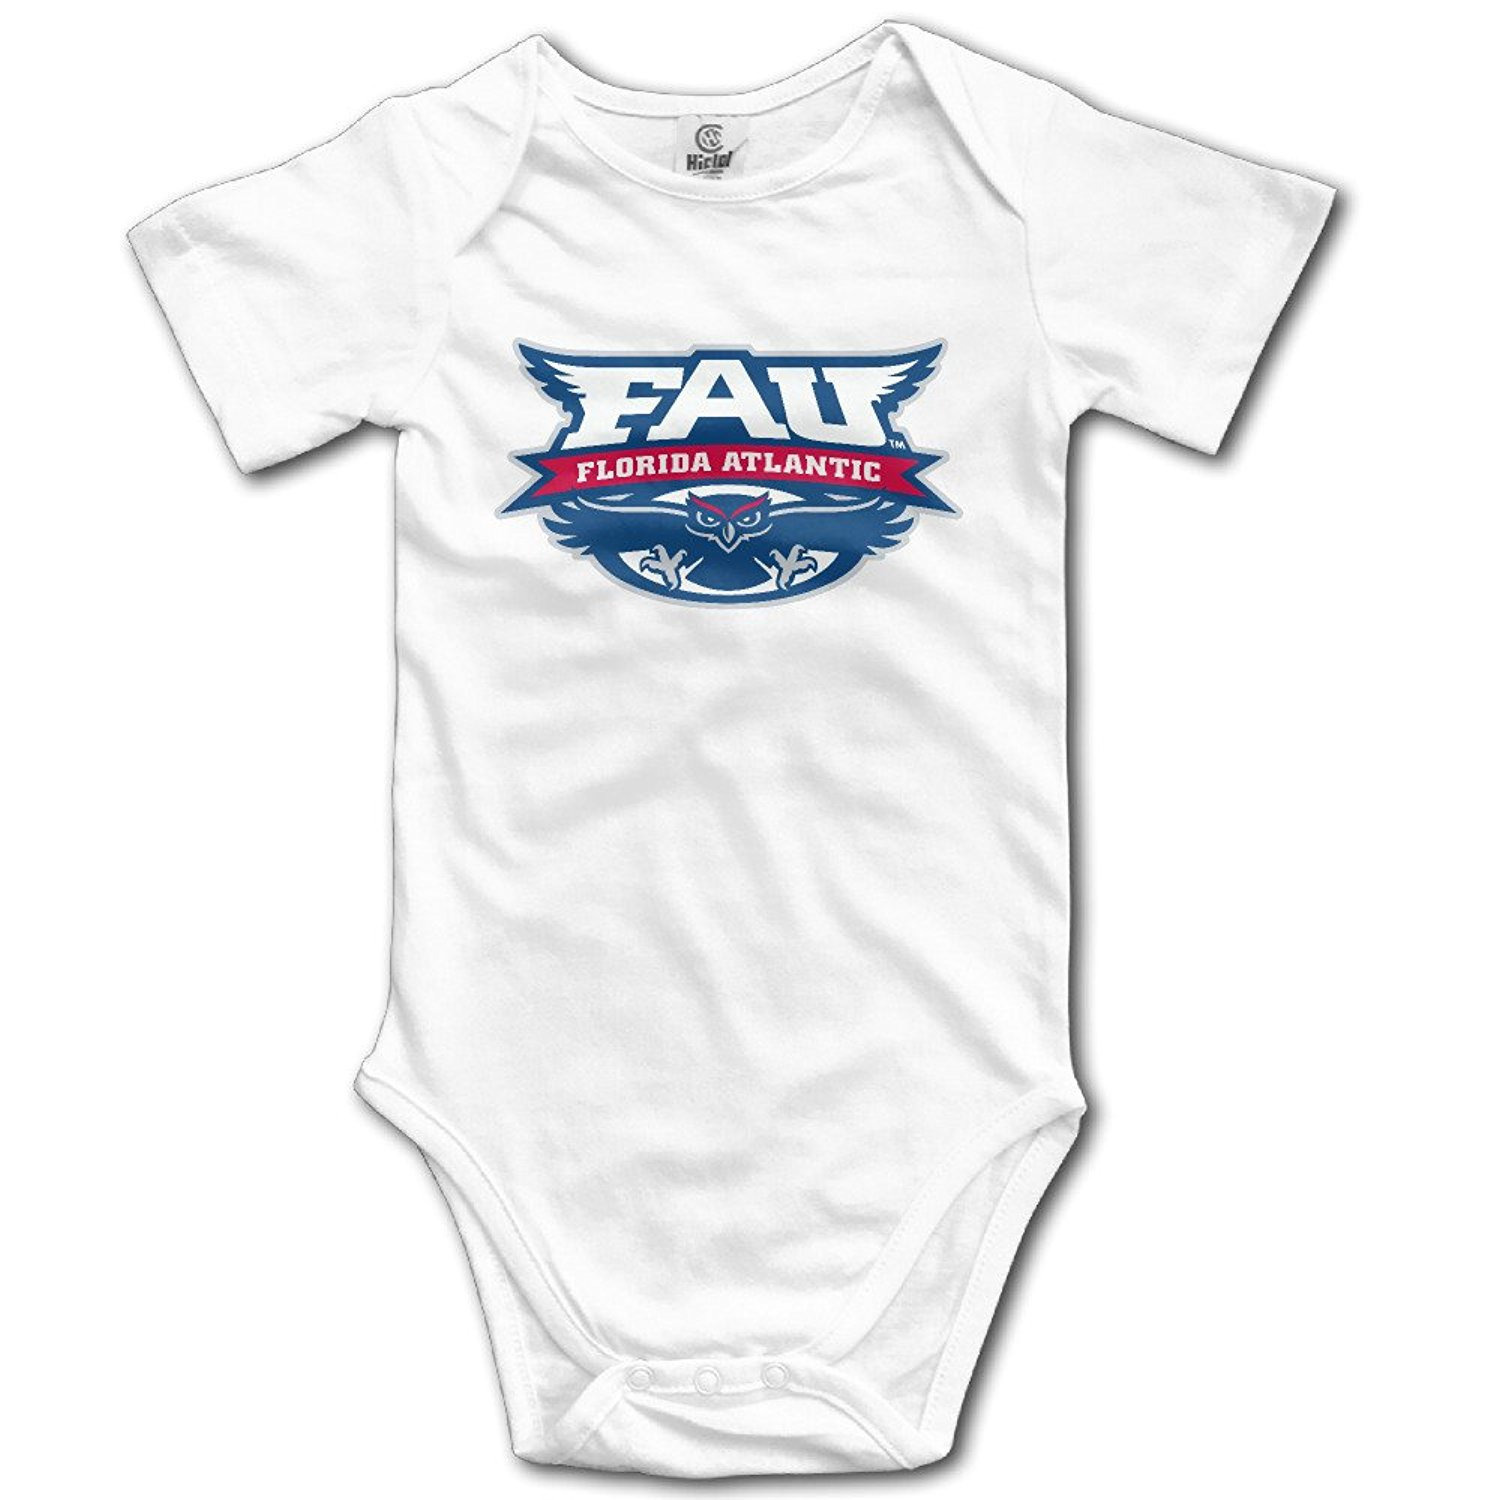 Fau Baby Clothes Newest and Cutest Baby Clothing Collection by Due